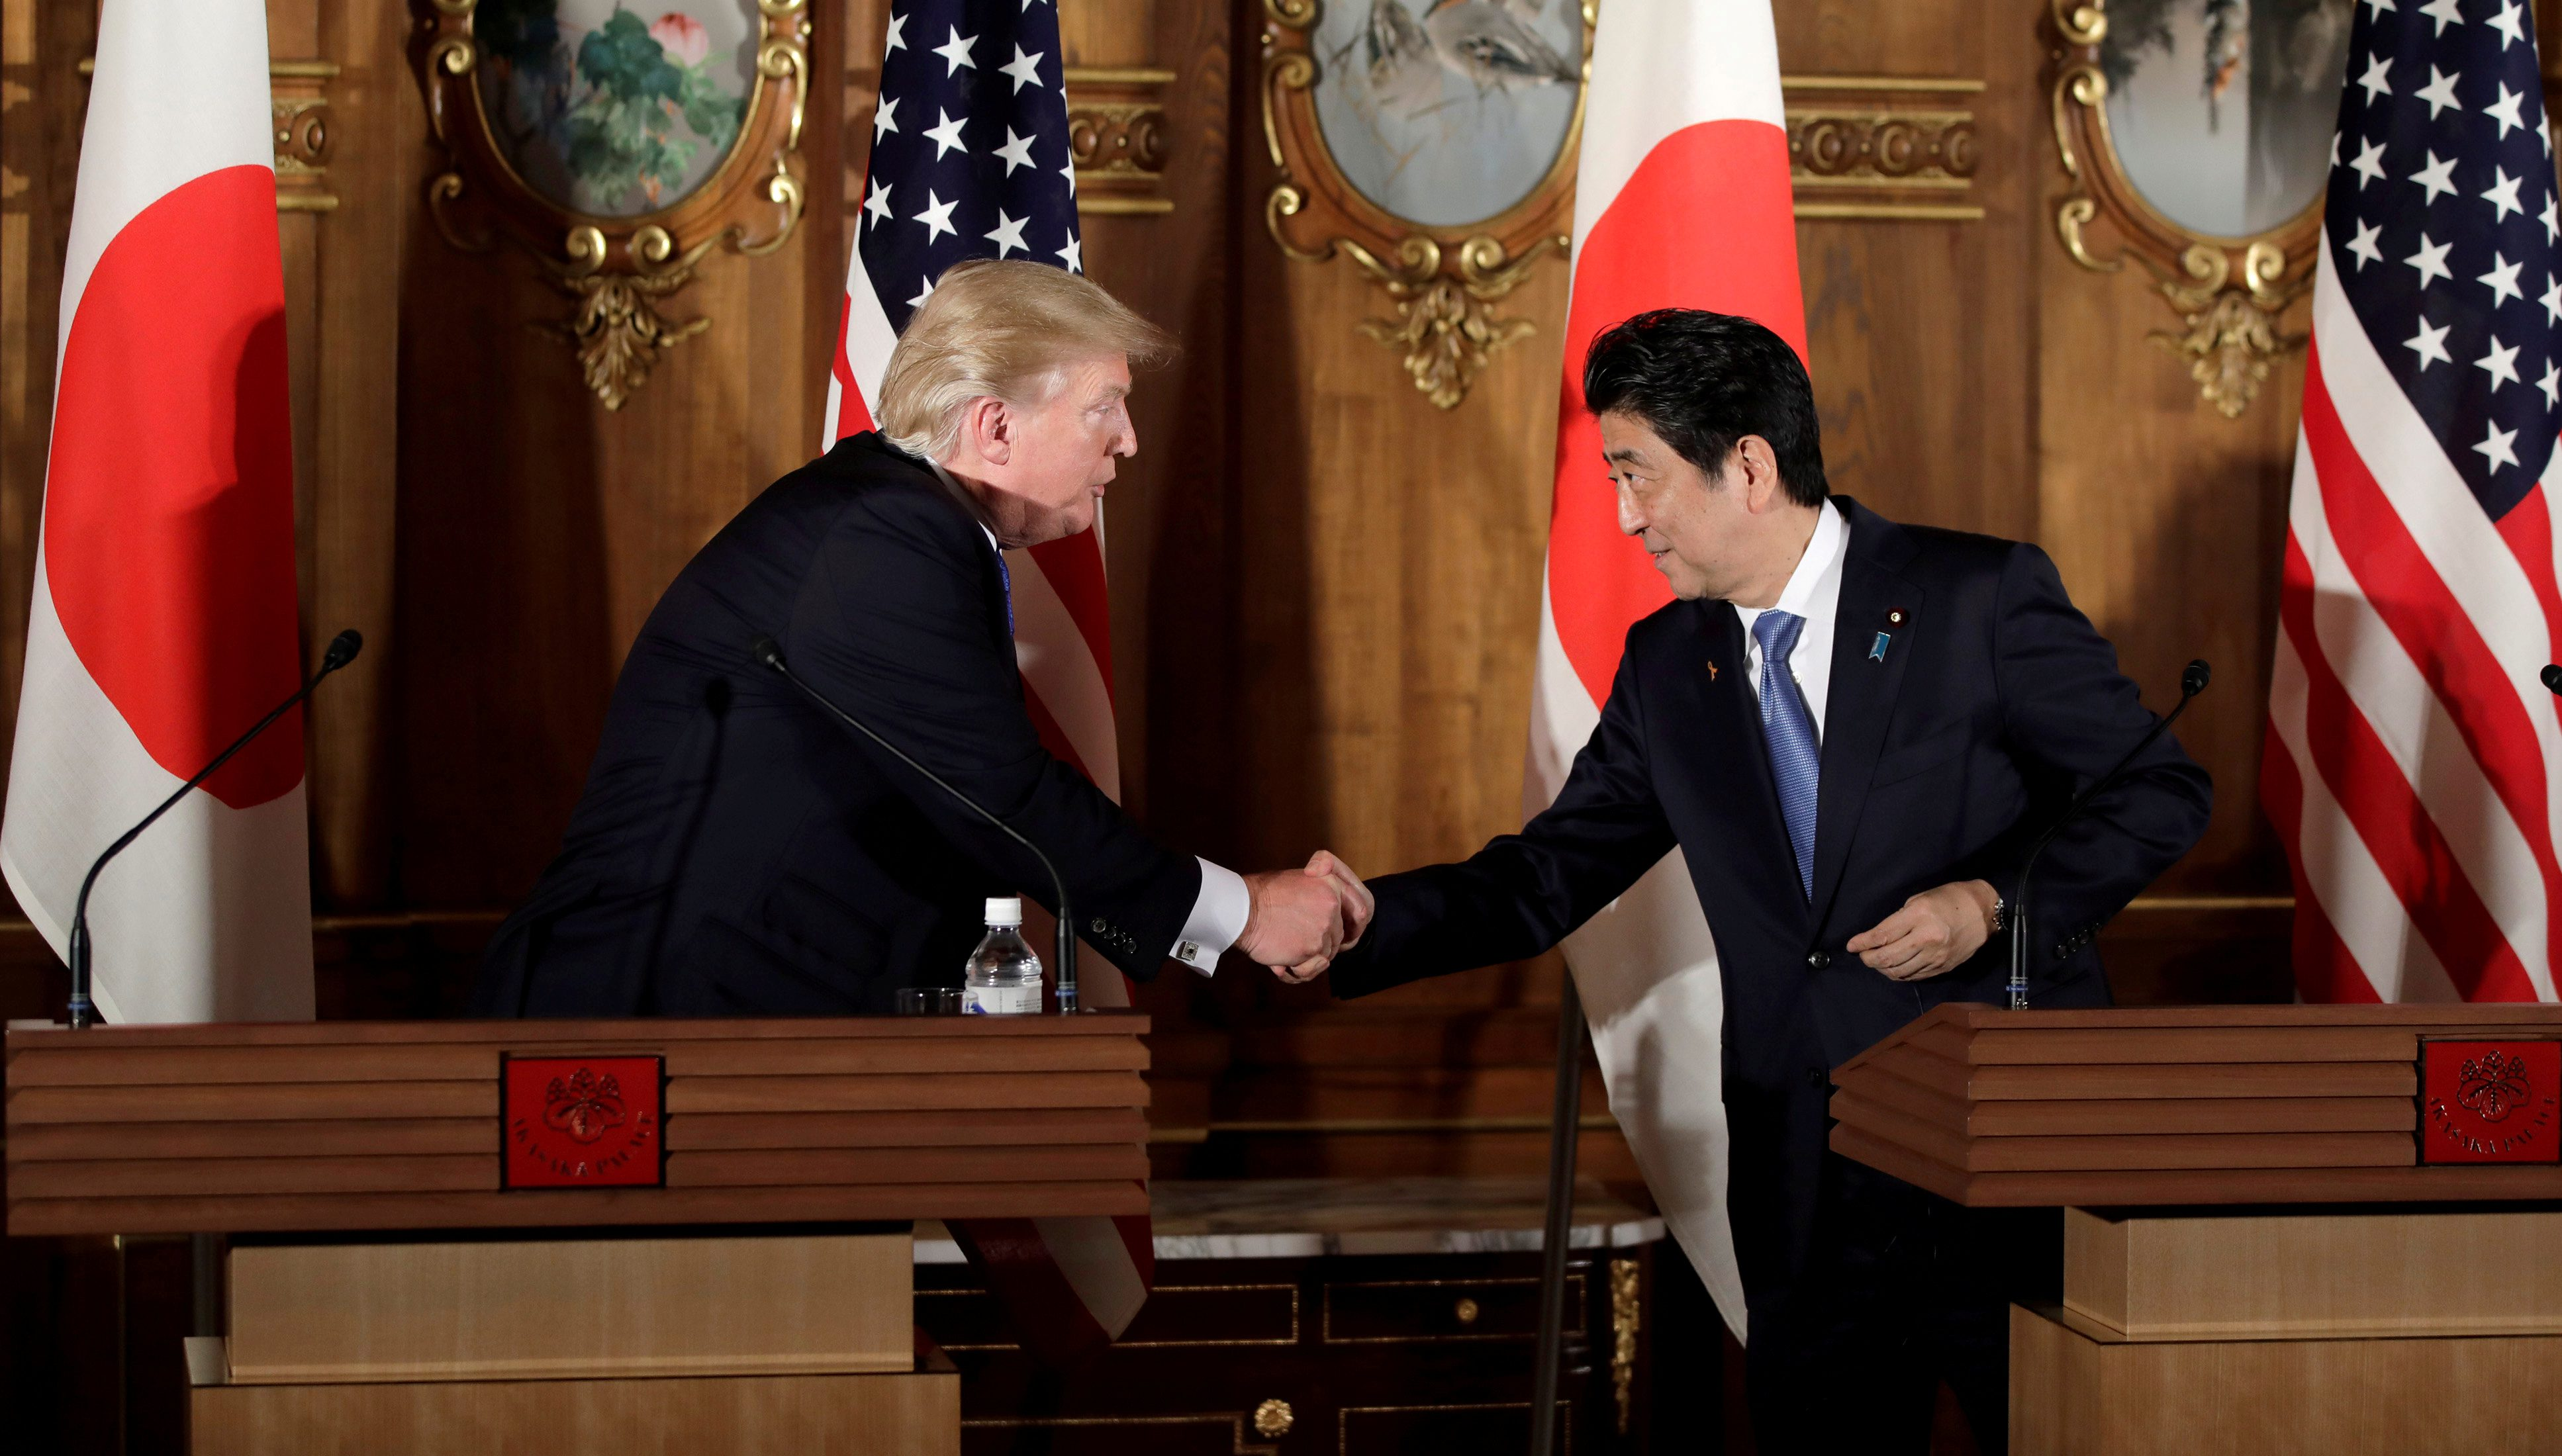 Donald Trump (L) shakes hands with Japan's Prime Minister Shinzo Abe during a news conference at Akasaka Palace in Tokyo, Japan, November 6, 2017. REUTERS/Kiyoshi Ota/Pool/File Photo - RC1EA05BE1C0